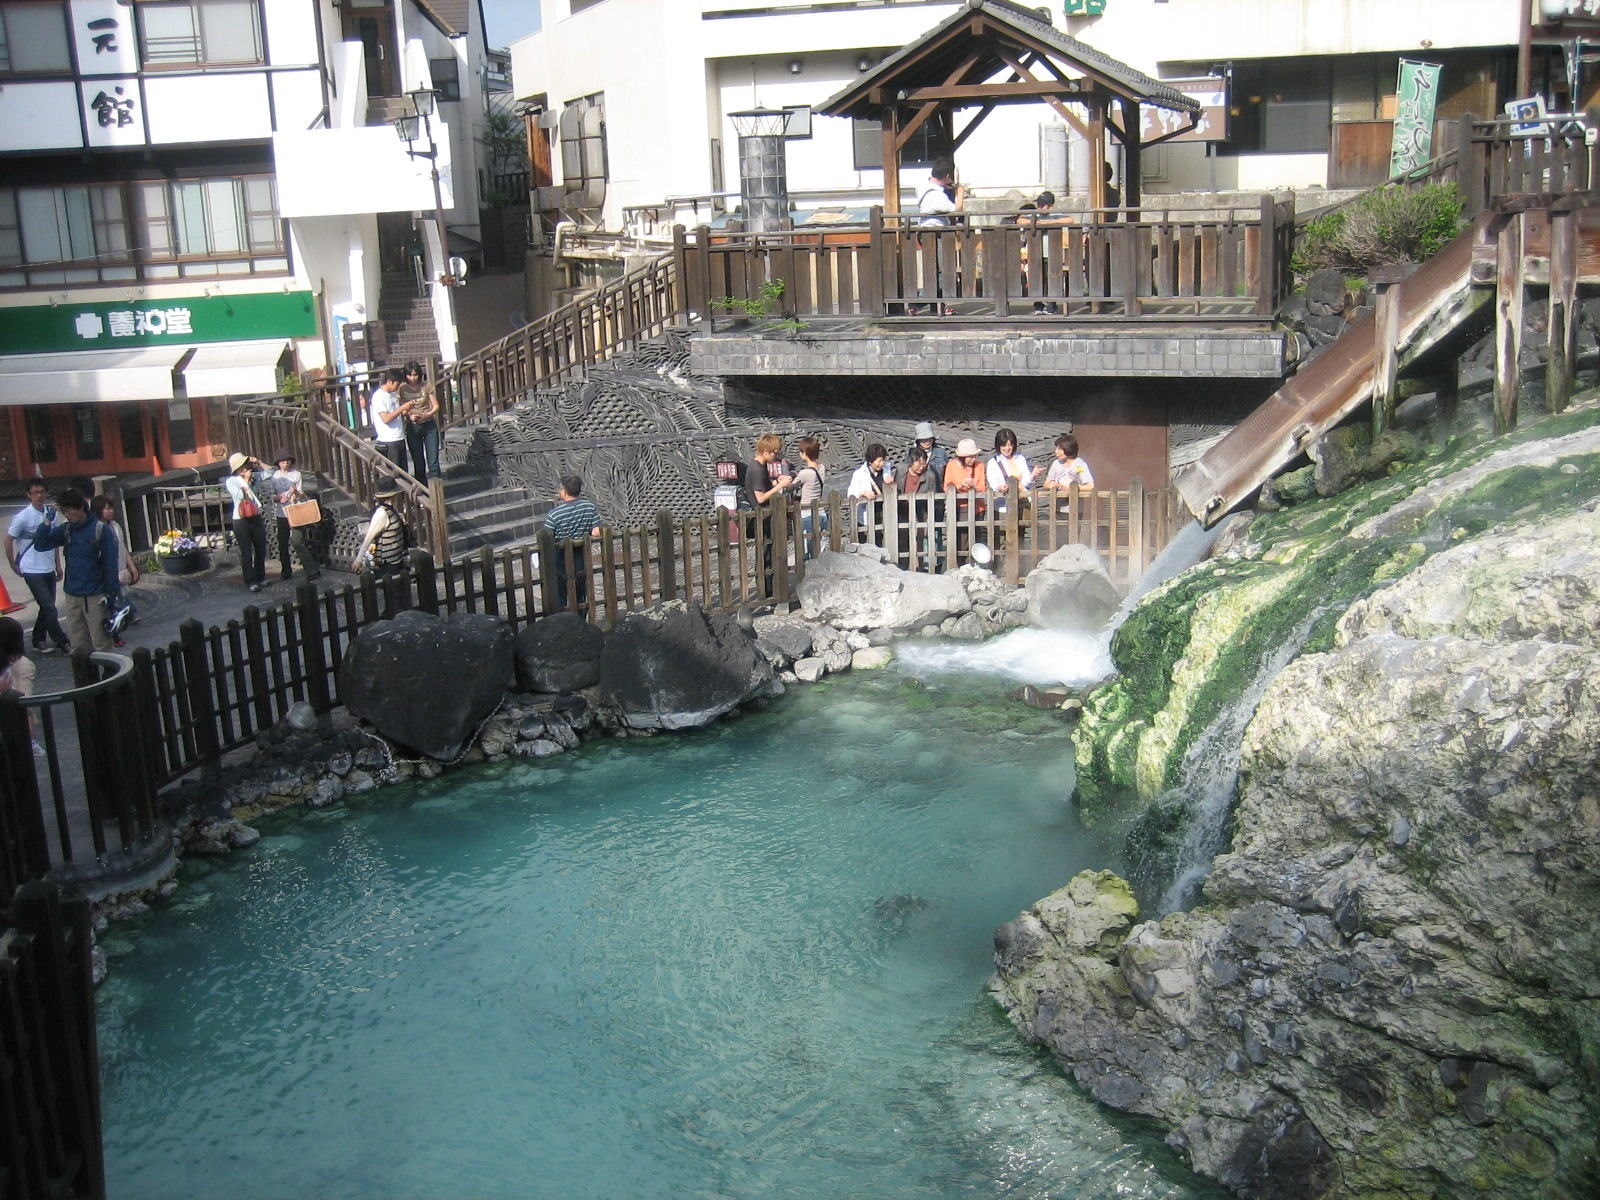 Kusatsu Japan  City pictures : Kusatsu Onsen Travel Guide | All Japan Tours